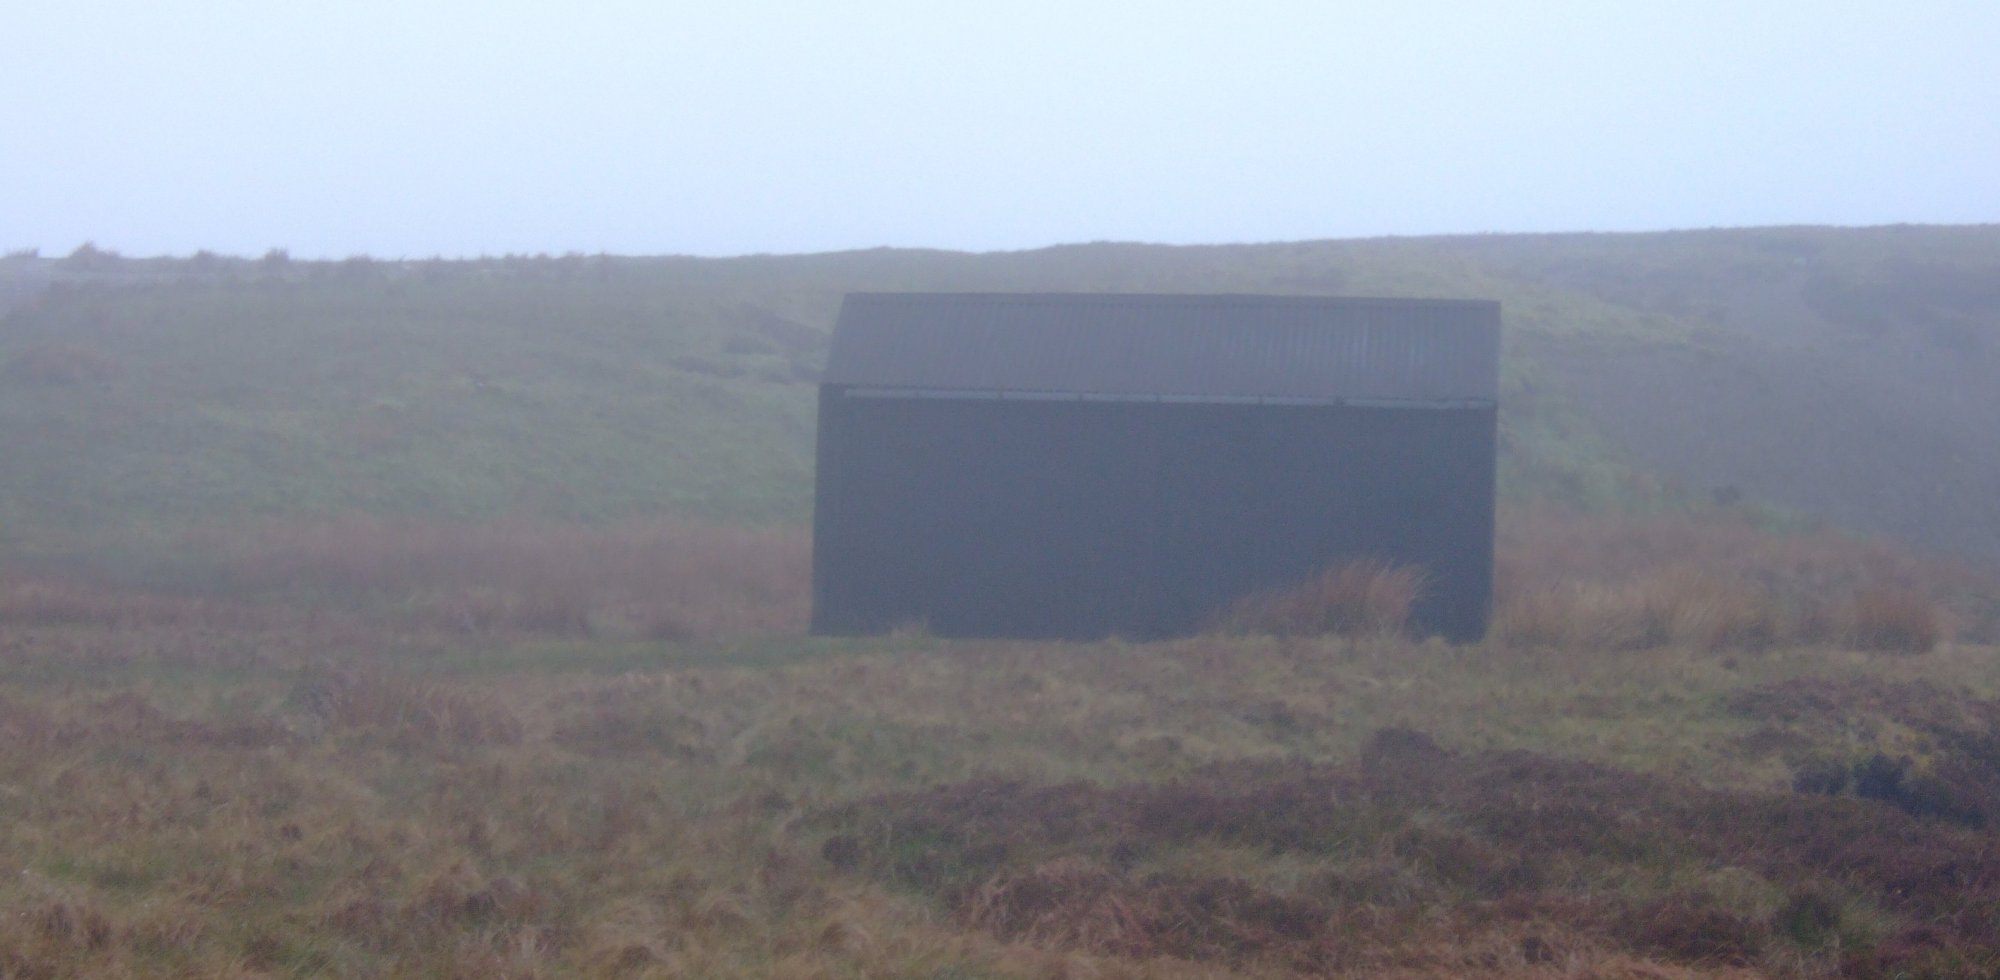 Shooting hut in Birk Dale (from 2009 C2C)